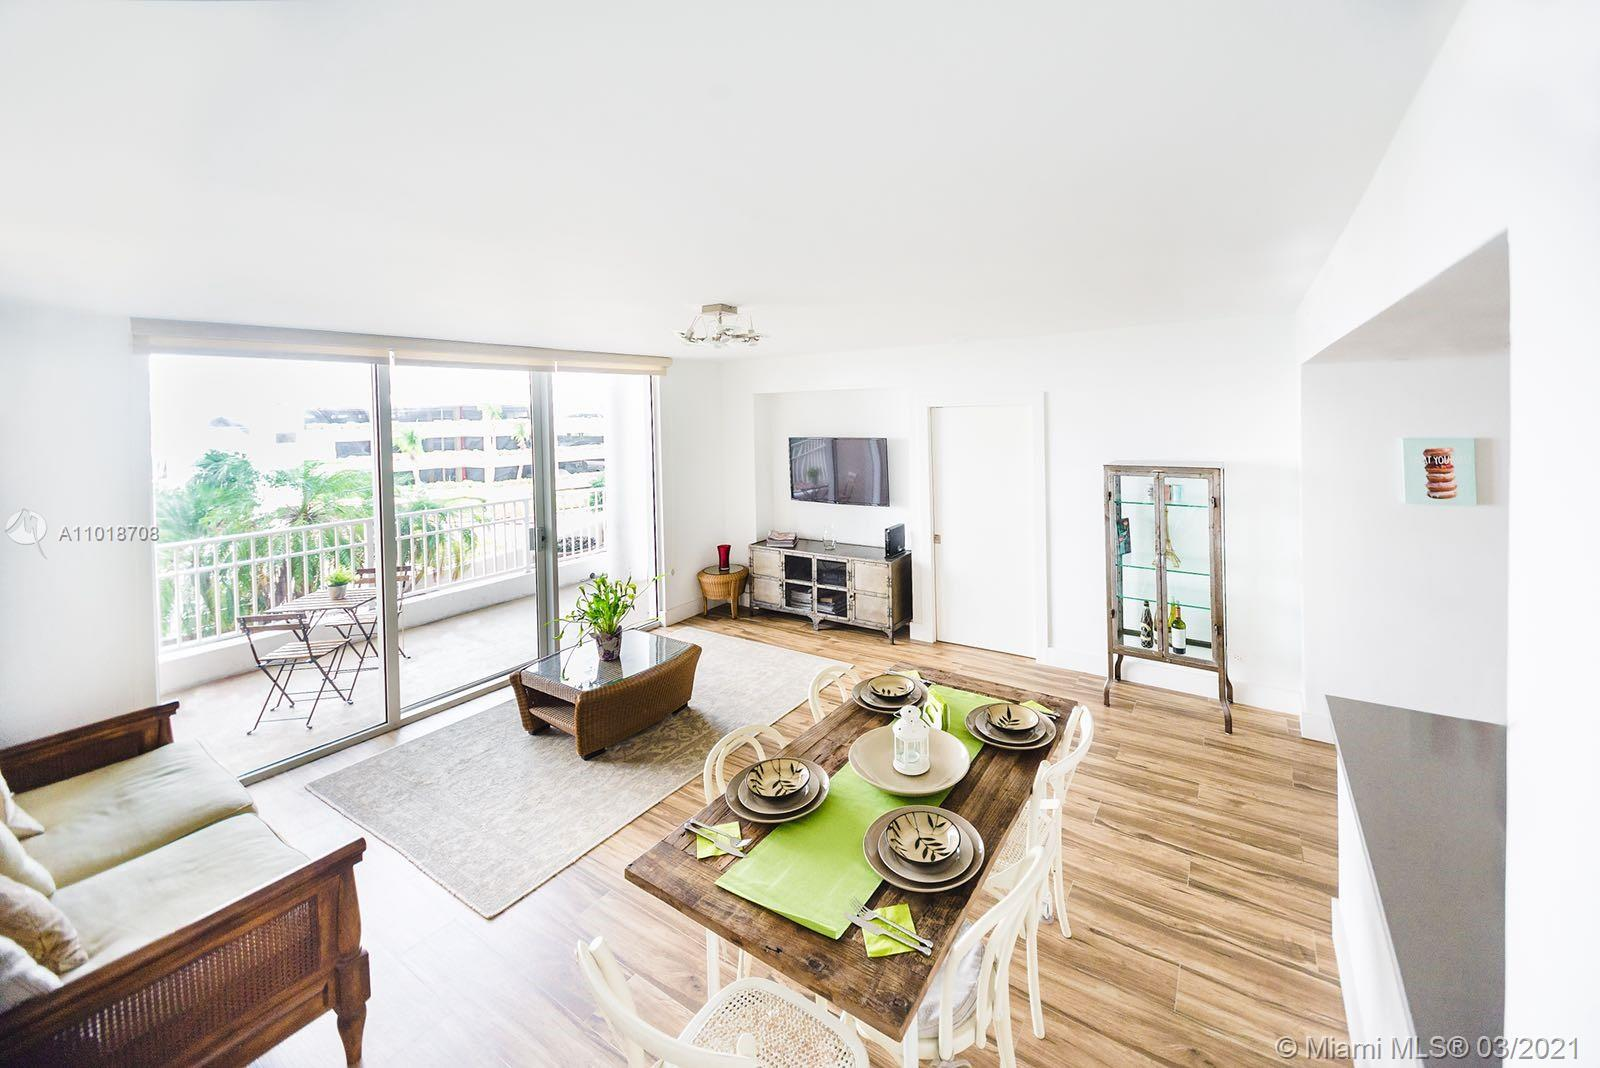 Courvoisier Courts #508 - 701 Brickell Key Blvd #508, Miami, FL 33131